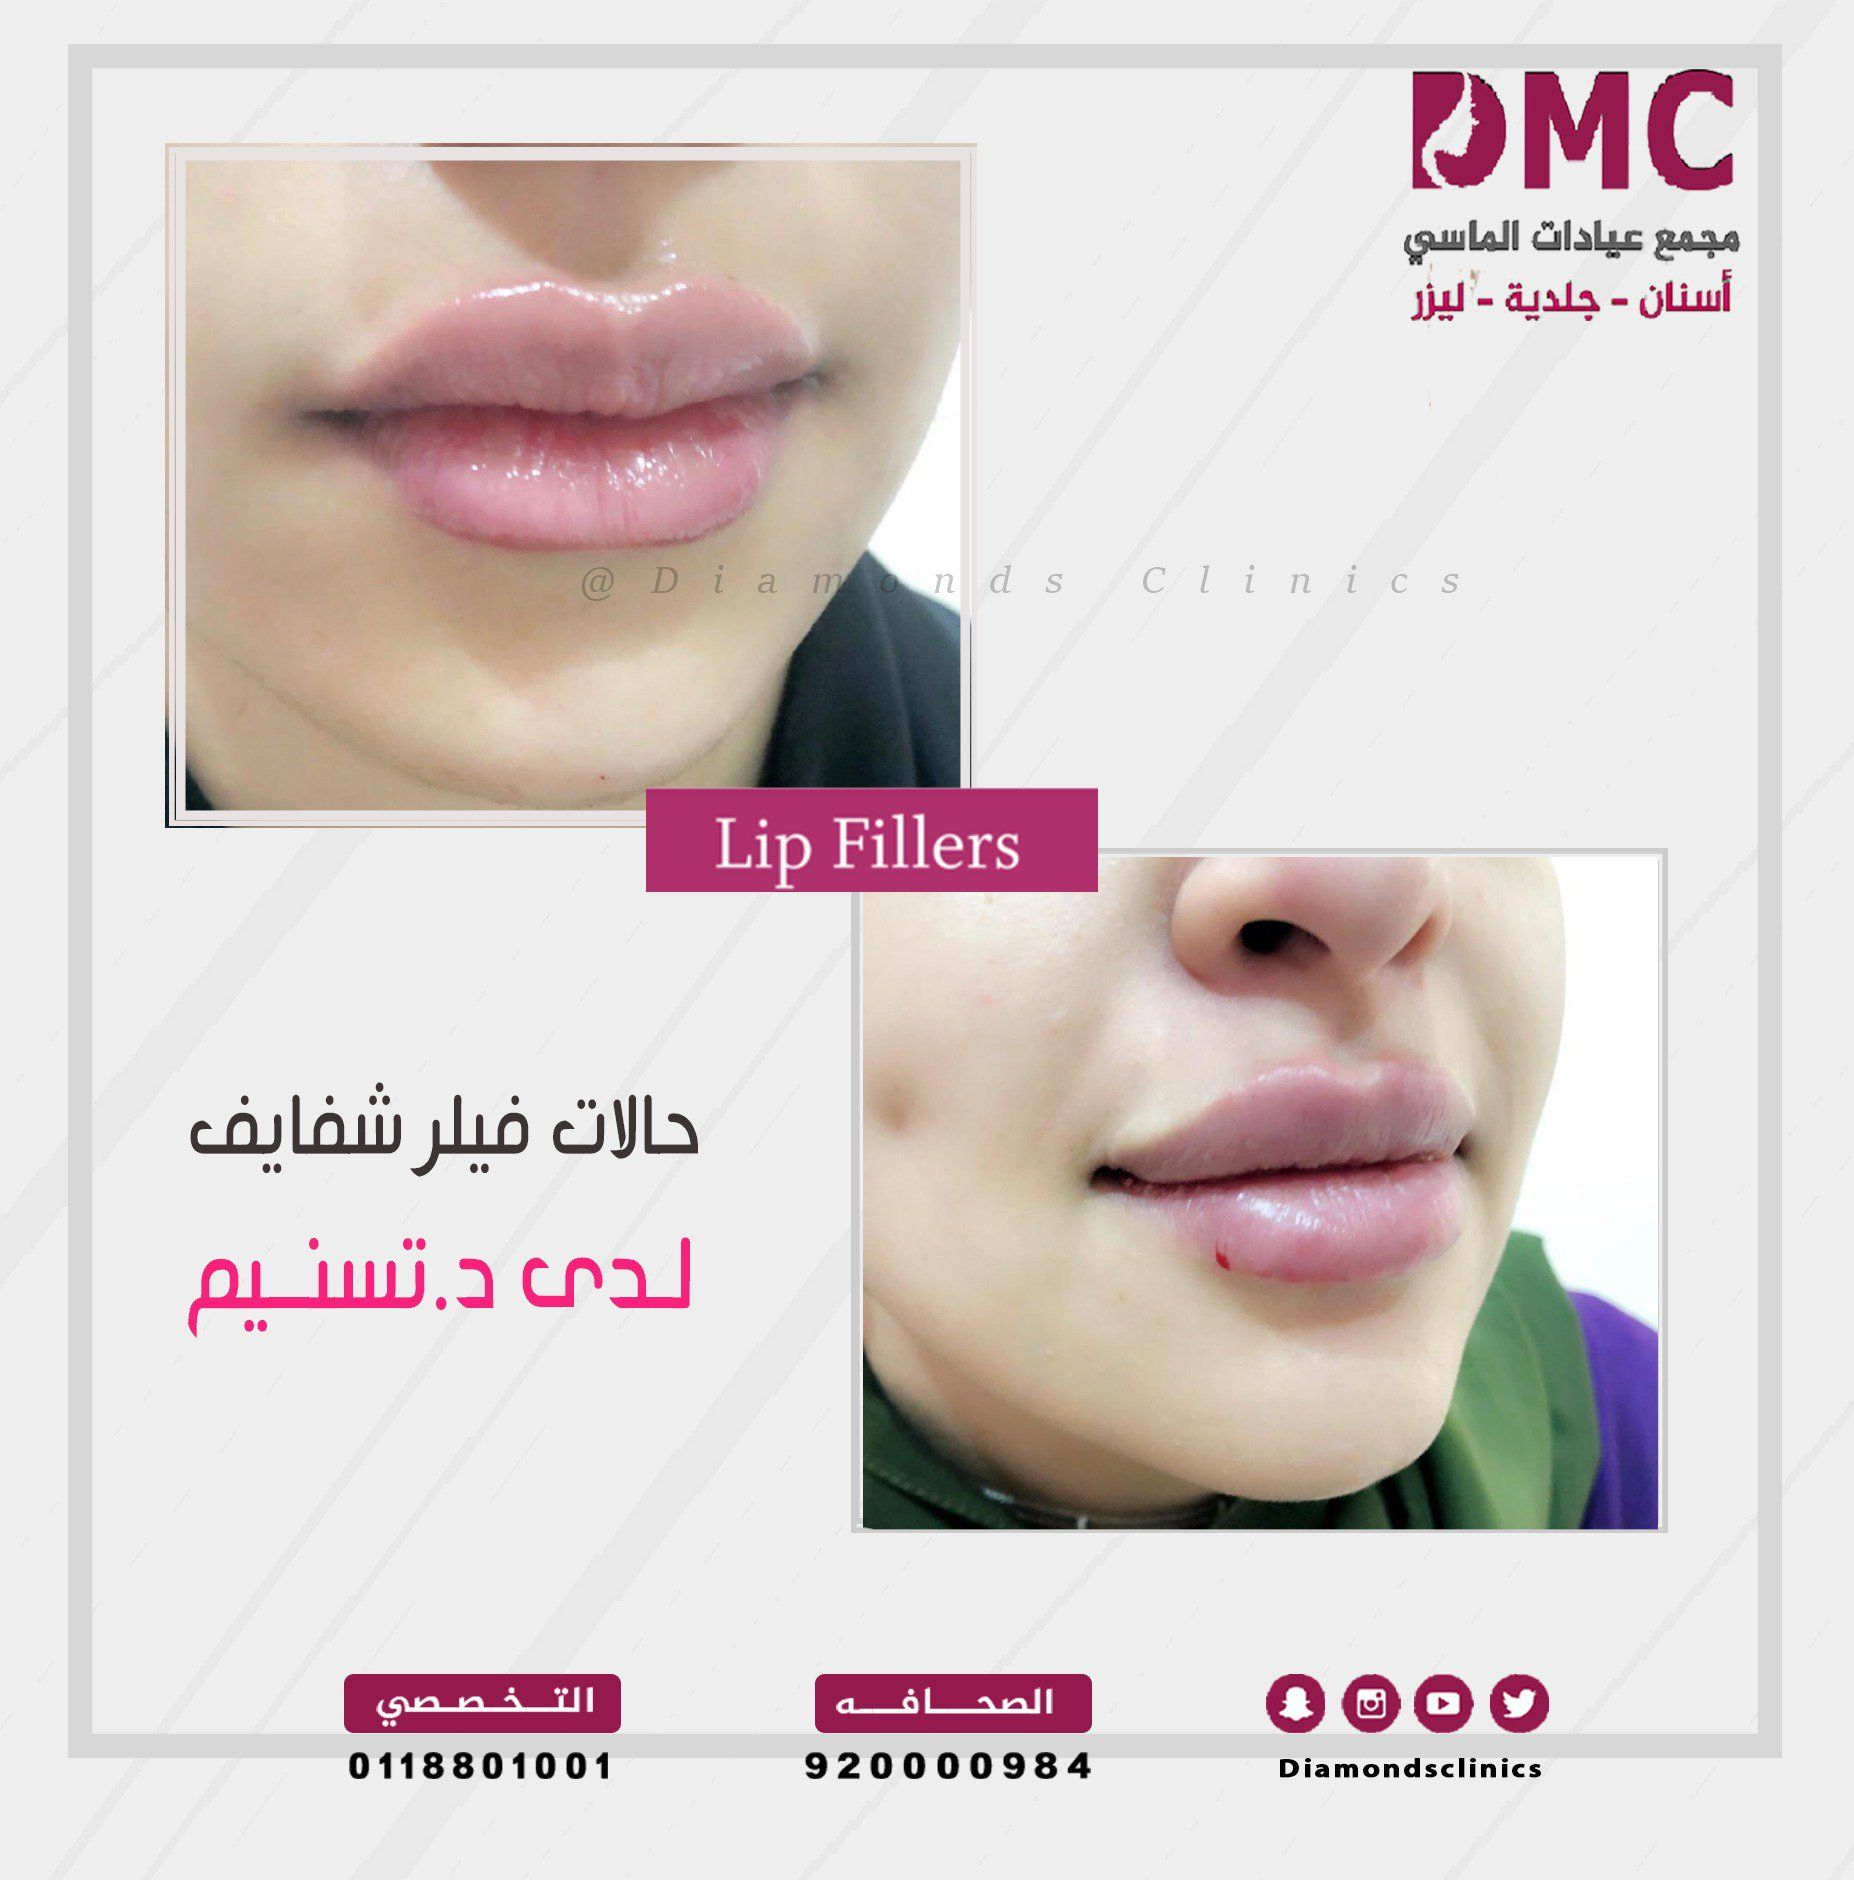 حالتان فيلر للشفايف رسم وكنتور وتعبئة الشفاه بدقه متناهيه لدى دكتورة تسنيم سعد سا Lip Fillers Lips Clinic